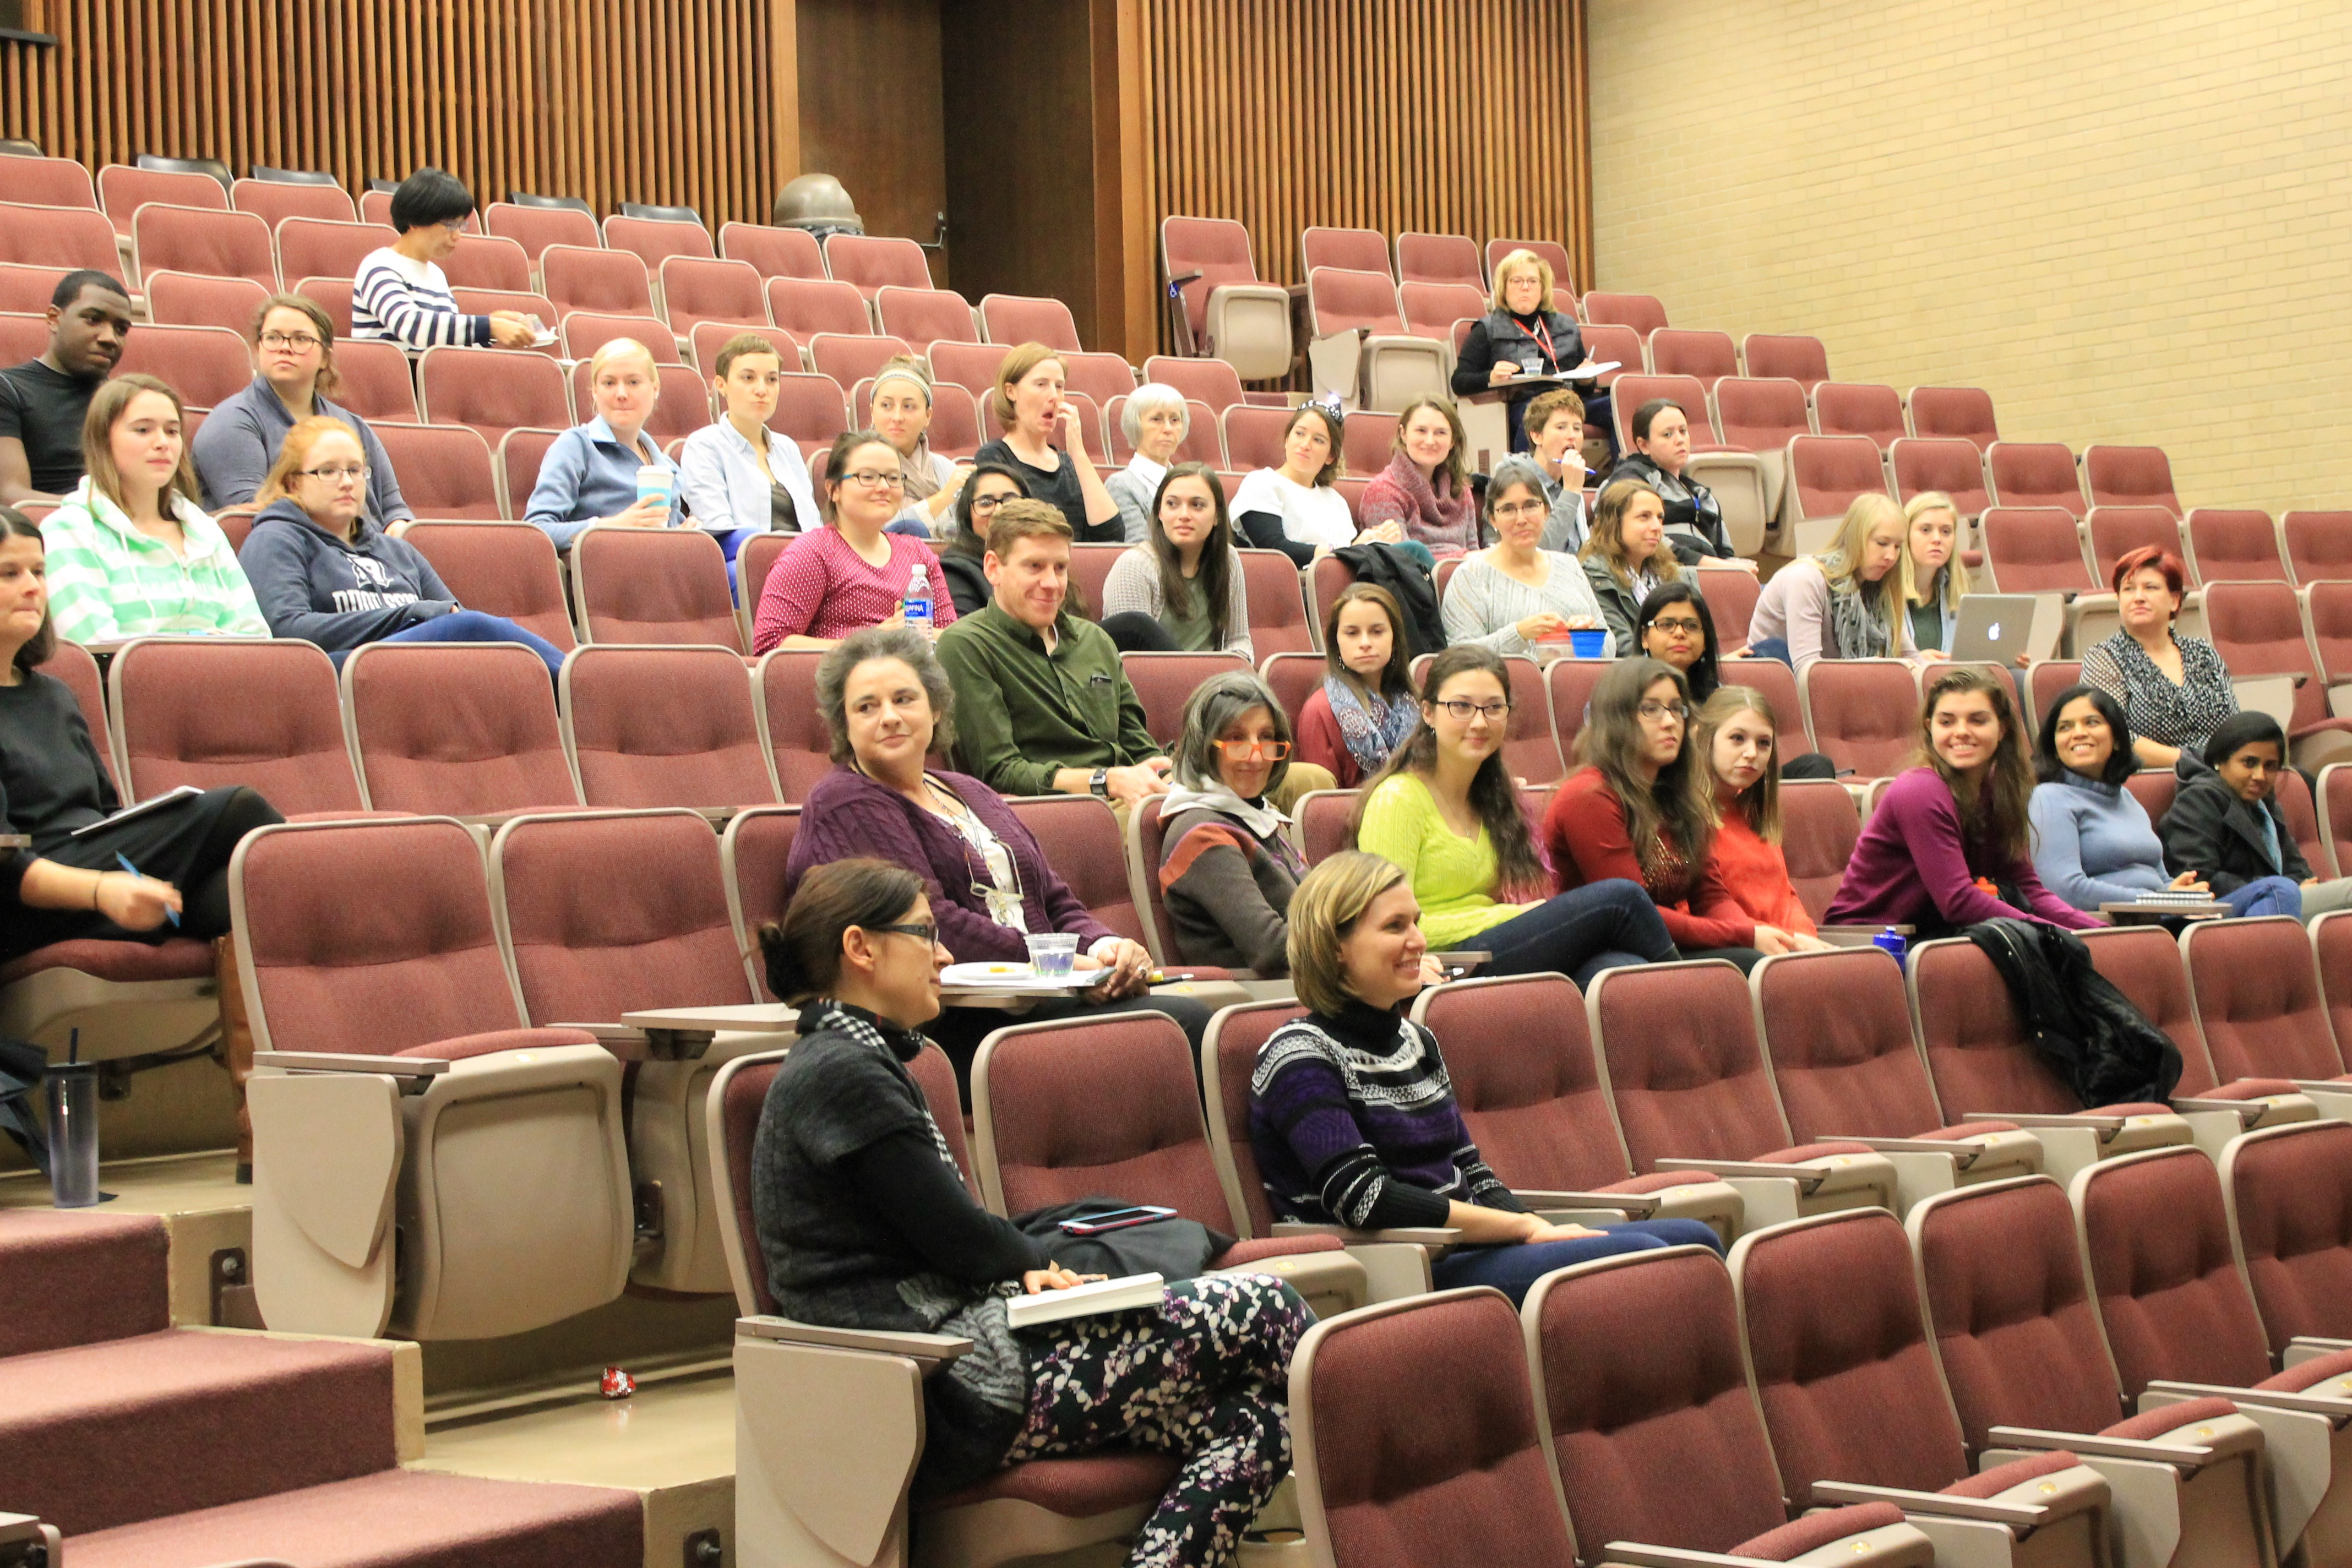 Workshop participants learned the skills of negotiating and the value of speaking up for yourself.